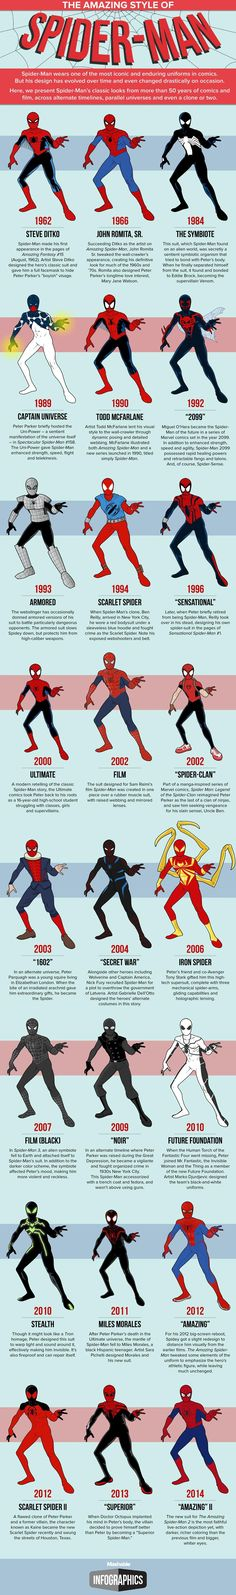 In honor of The Amazing Spider-Man 2 opening this weekend, here are 24 of Spider-Man's classic looks.